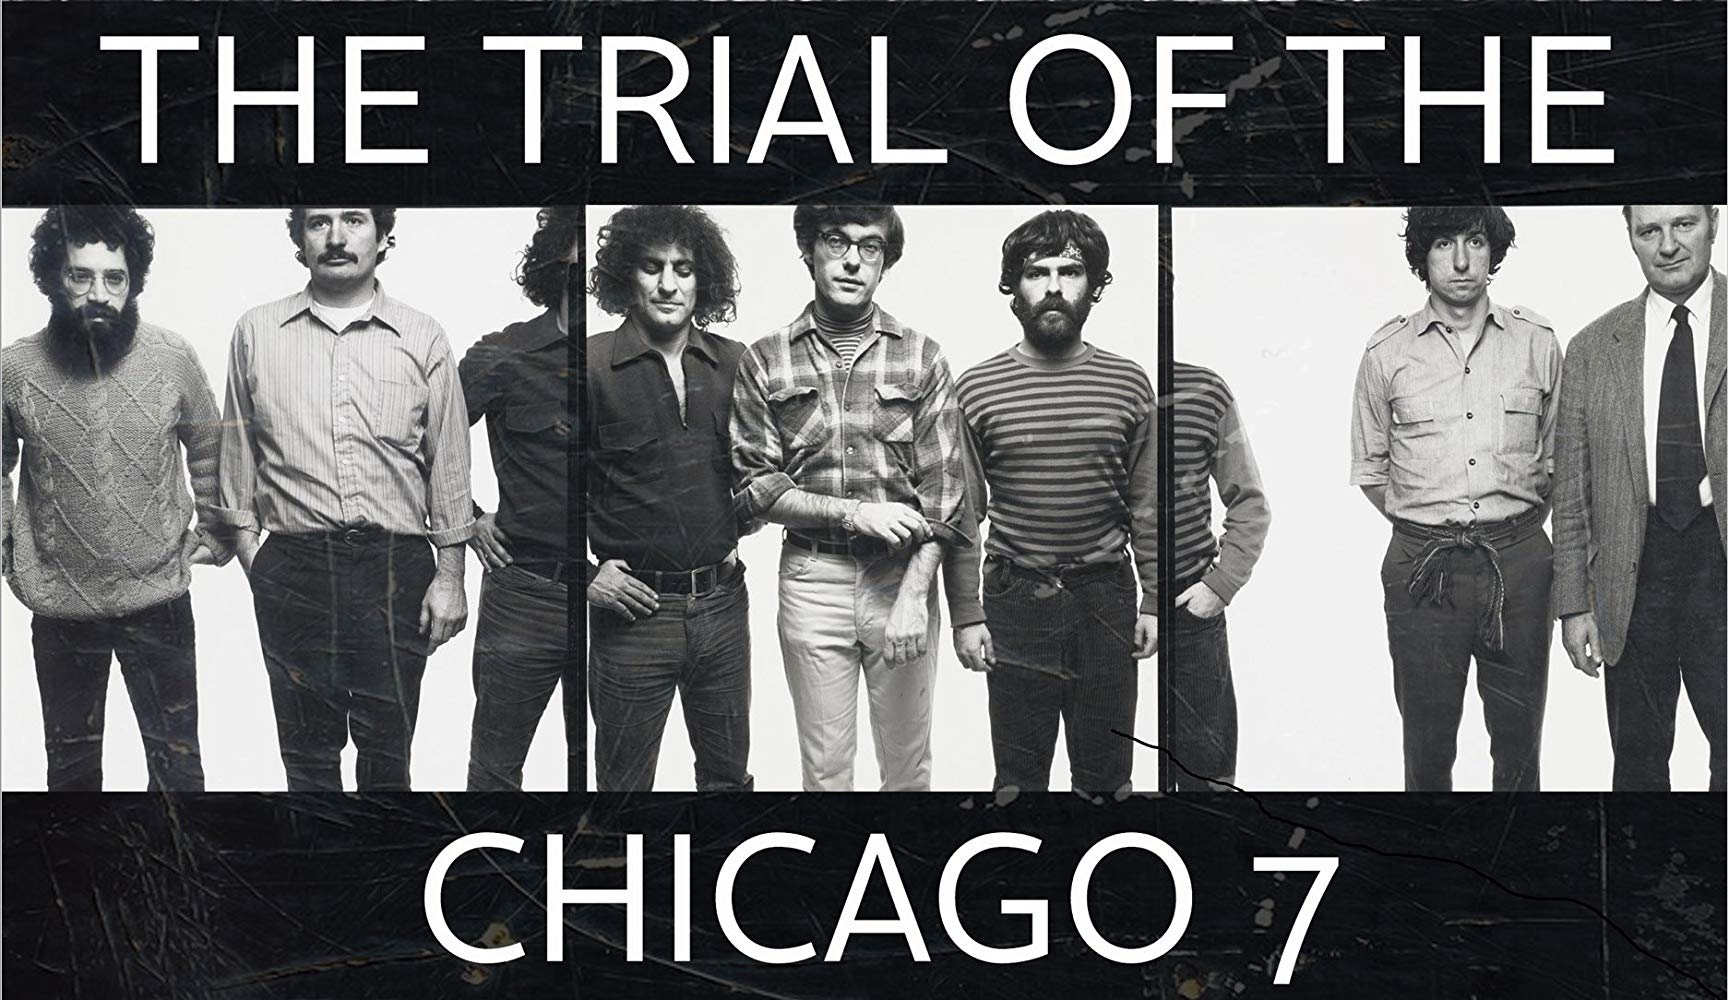 The-Trial-of-the-Chicago-7-(2020)